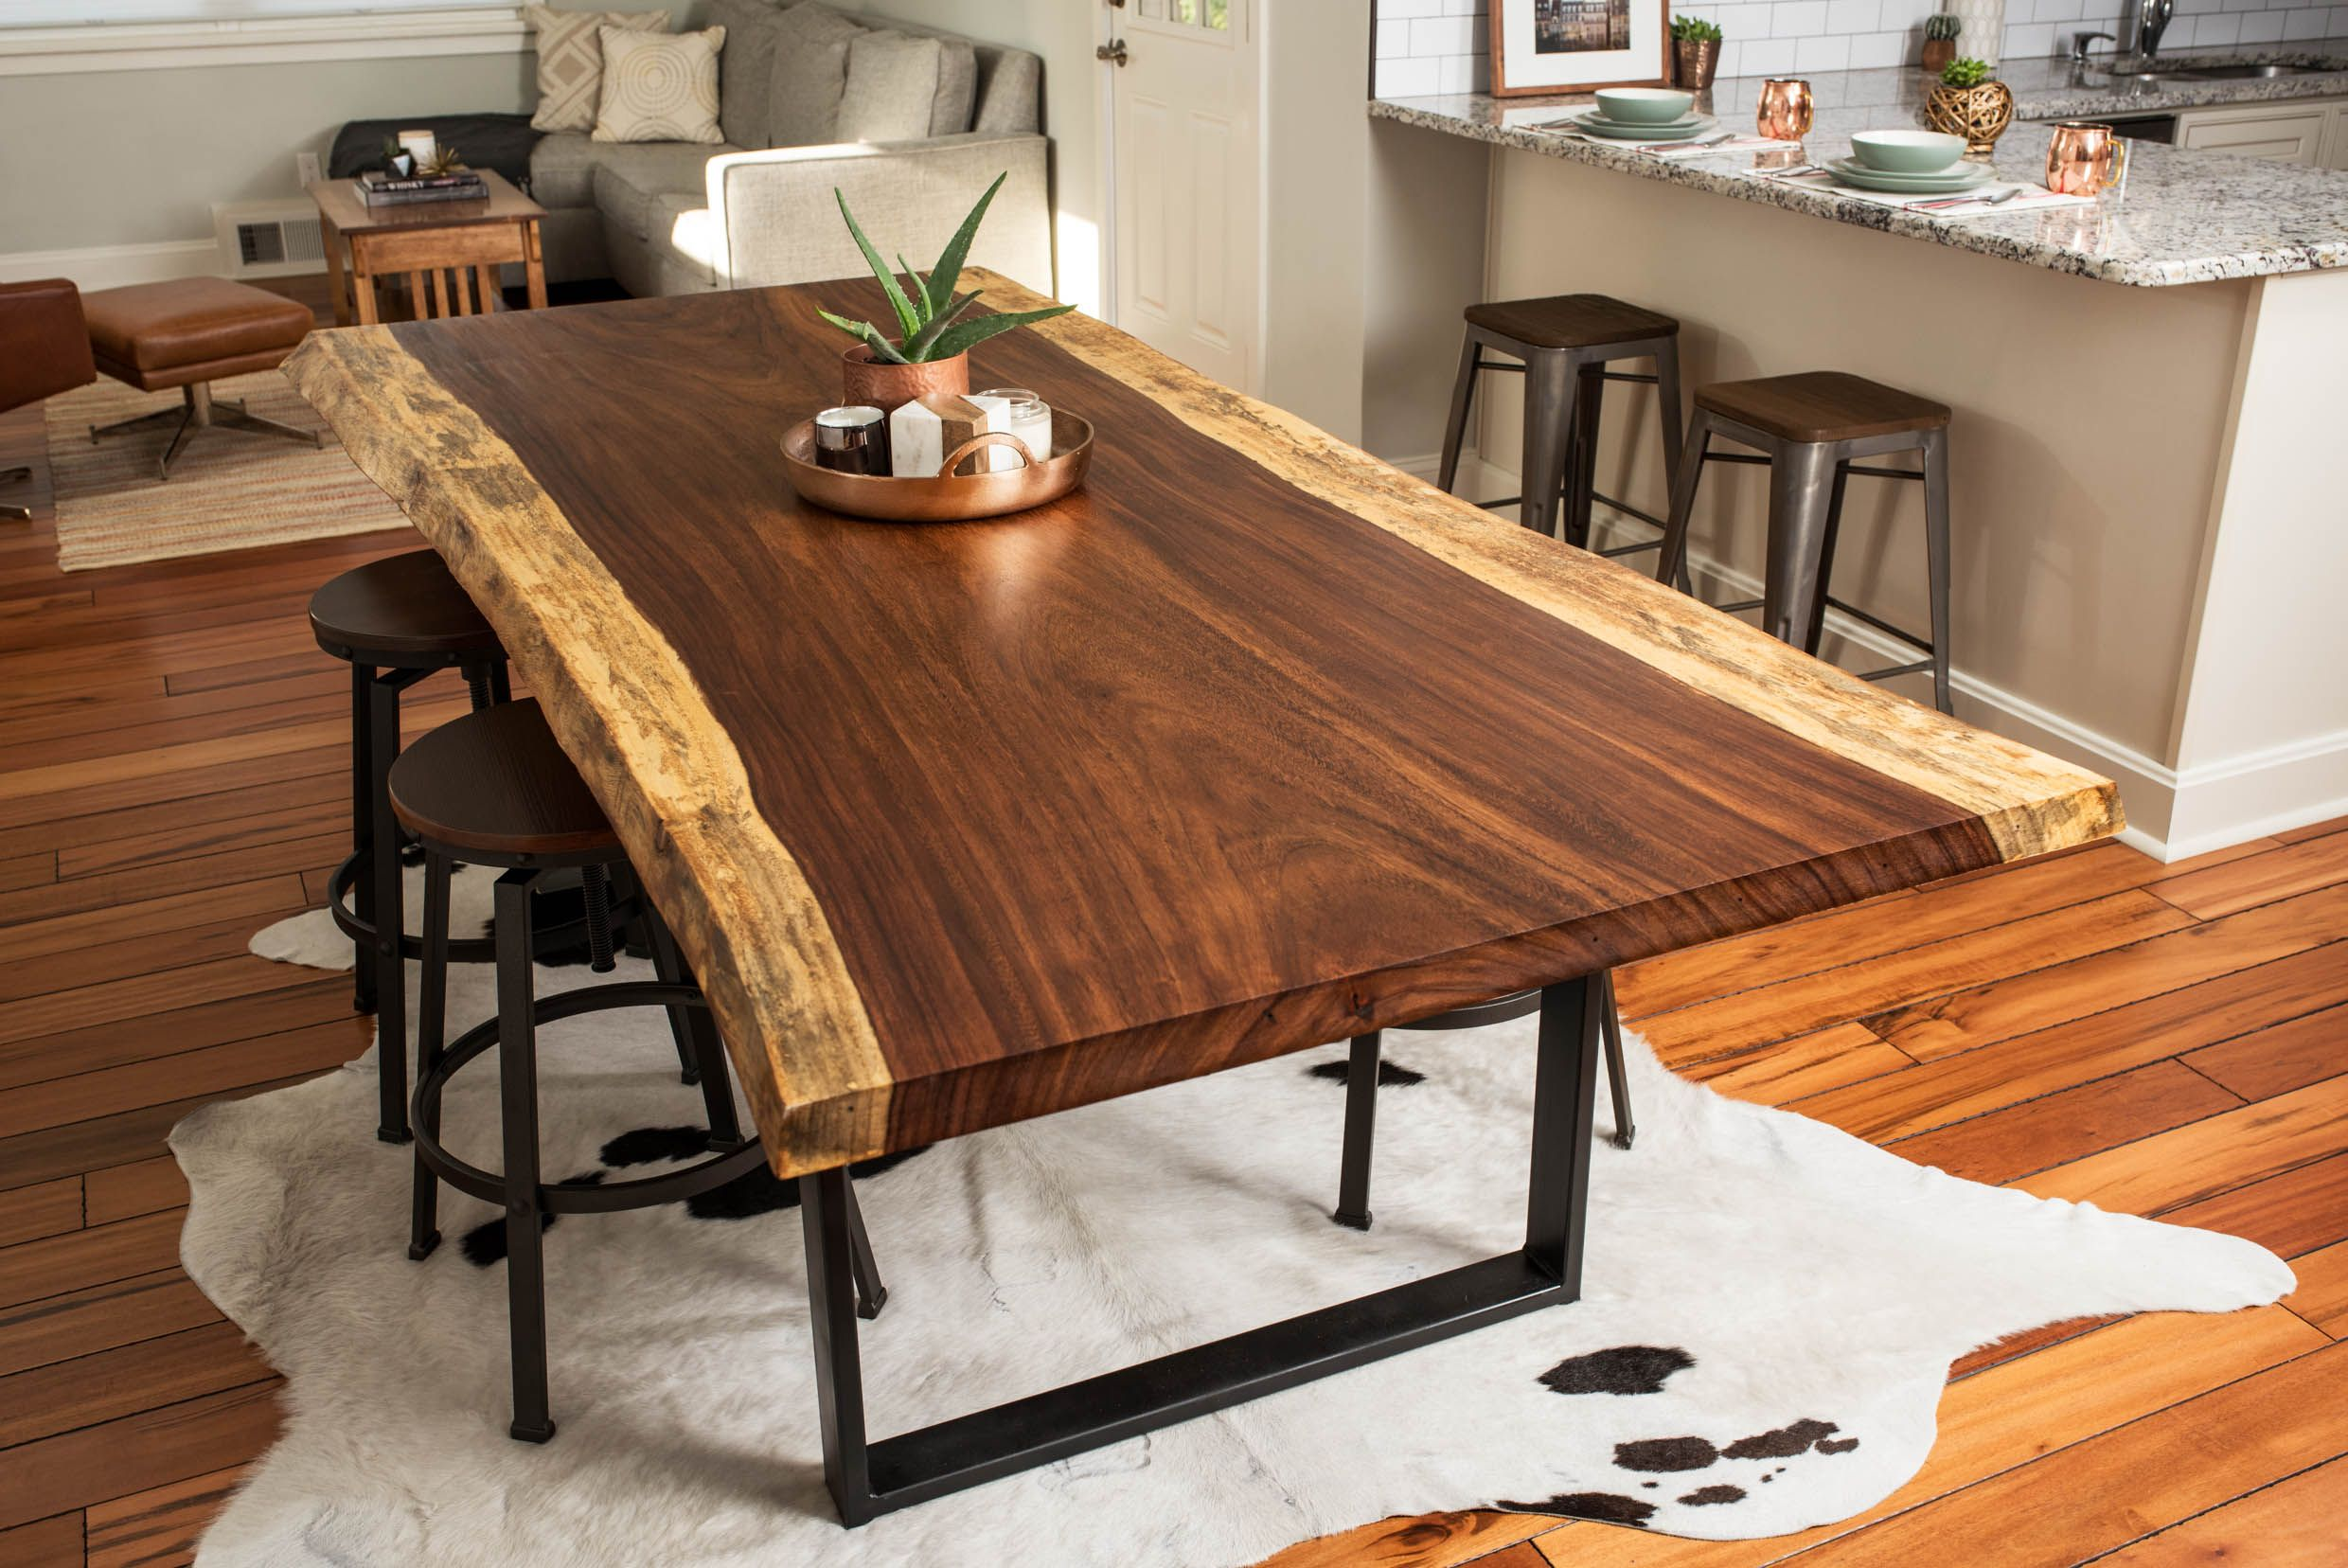 Acacia Dining Table Buy A Hand Made Live Edge Acacia Dining Conference Table